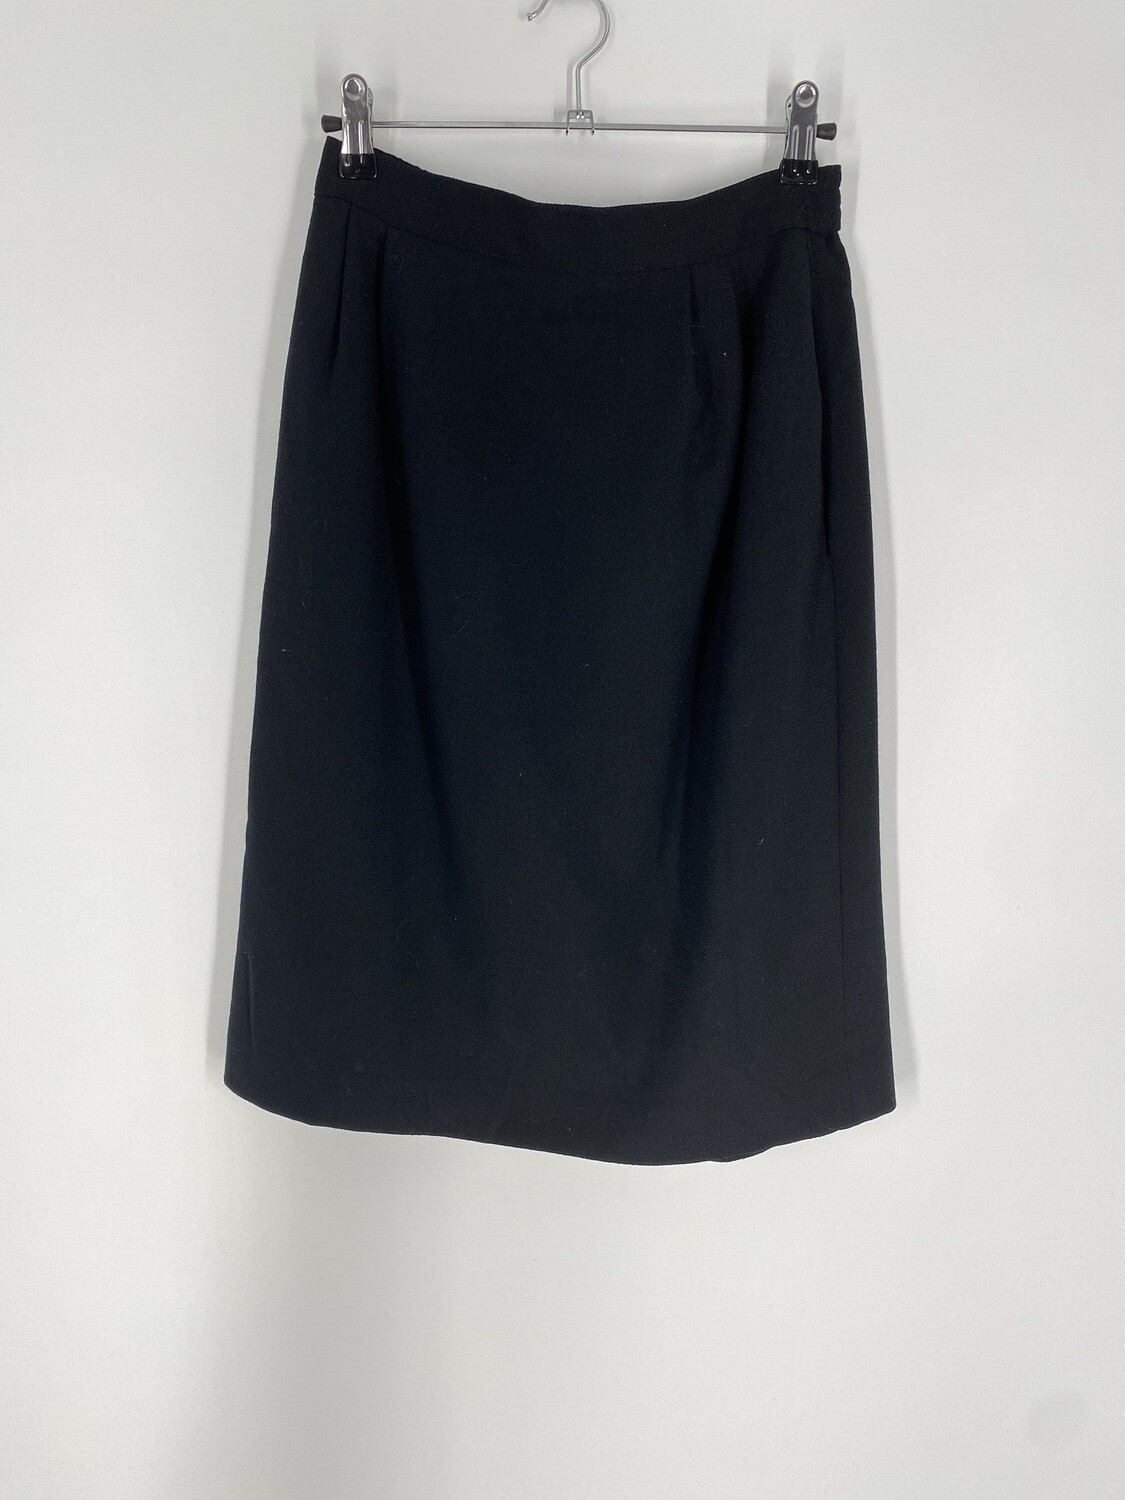 Talbots Black Skirt Size M